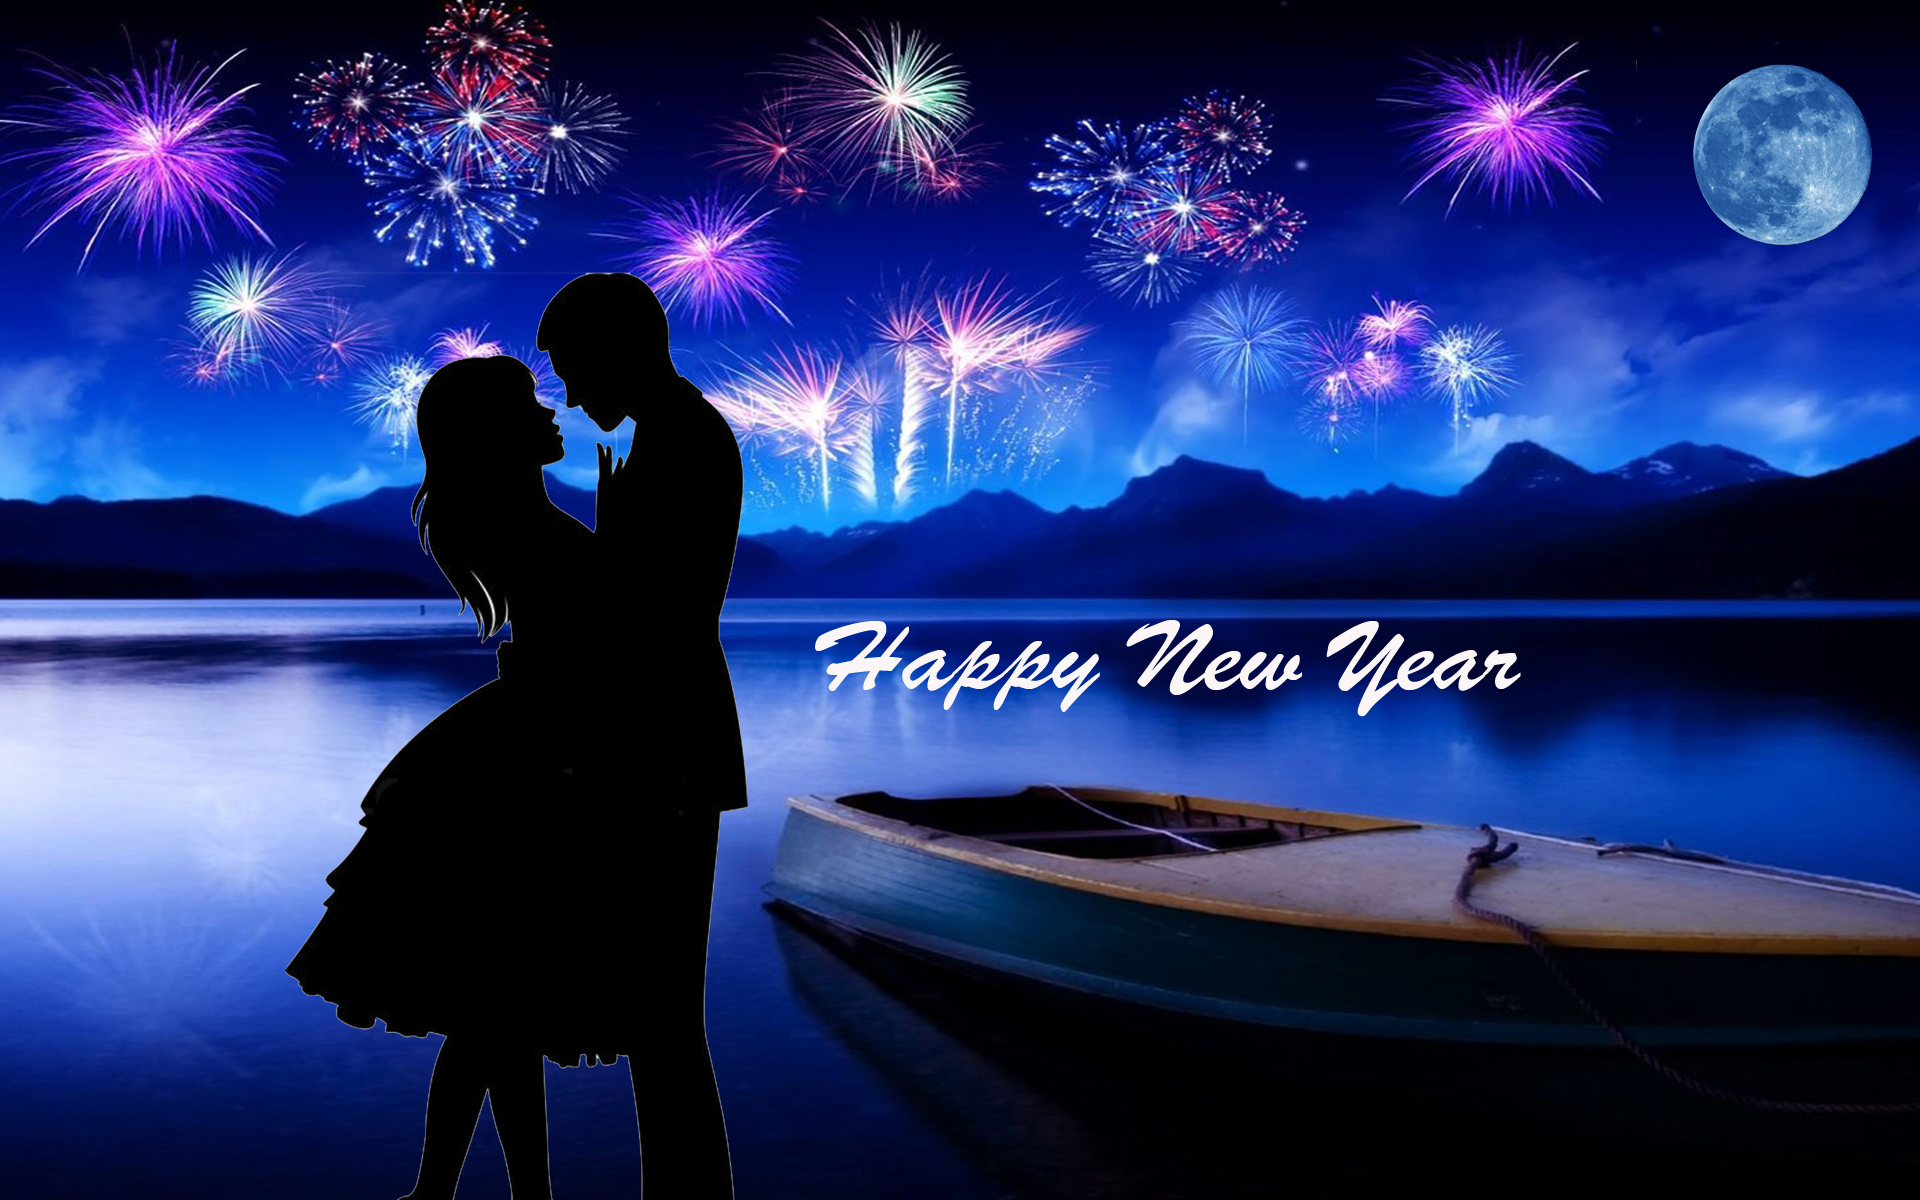 Happy New Year 2020 I Love You Greeting Cards Christmas Desktop Hd 1920x1200